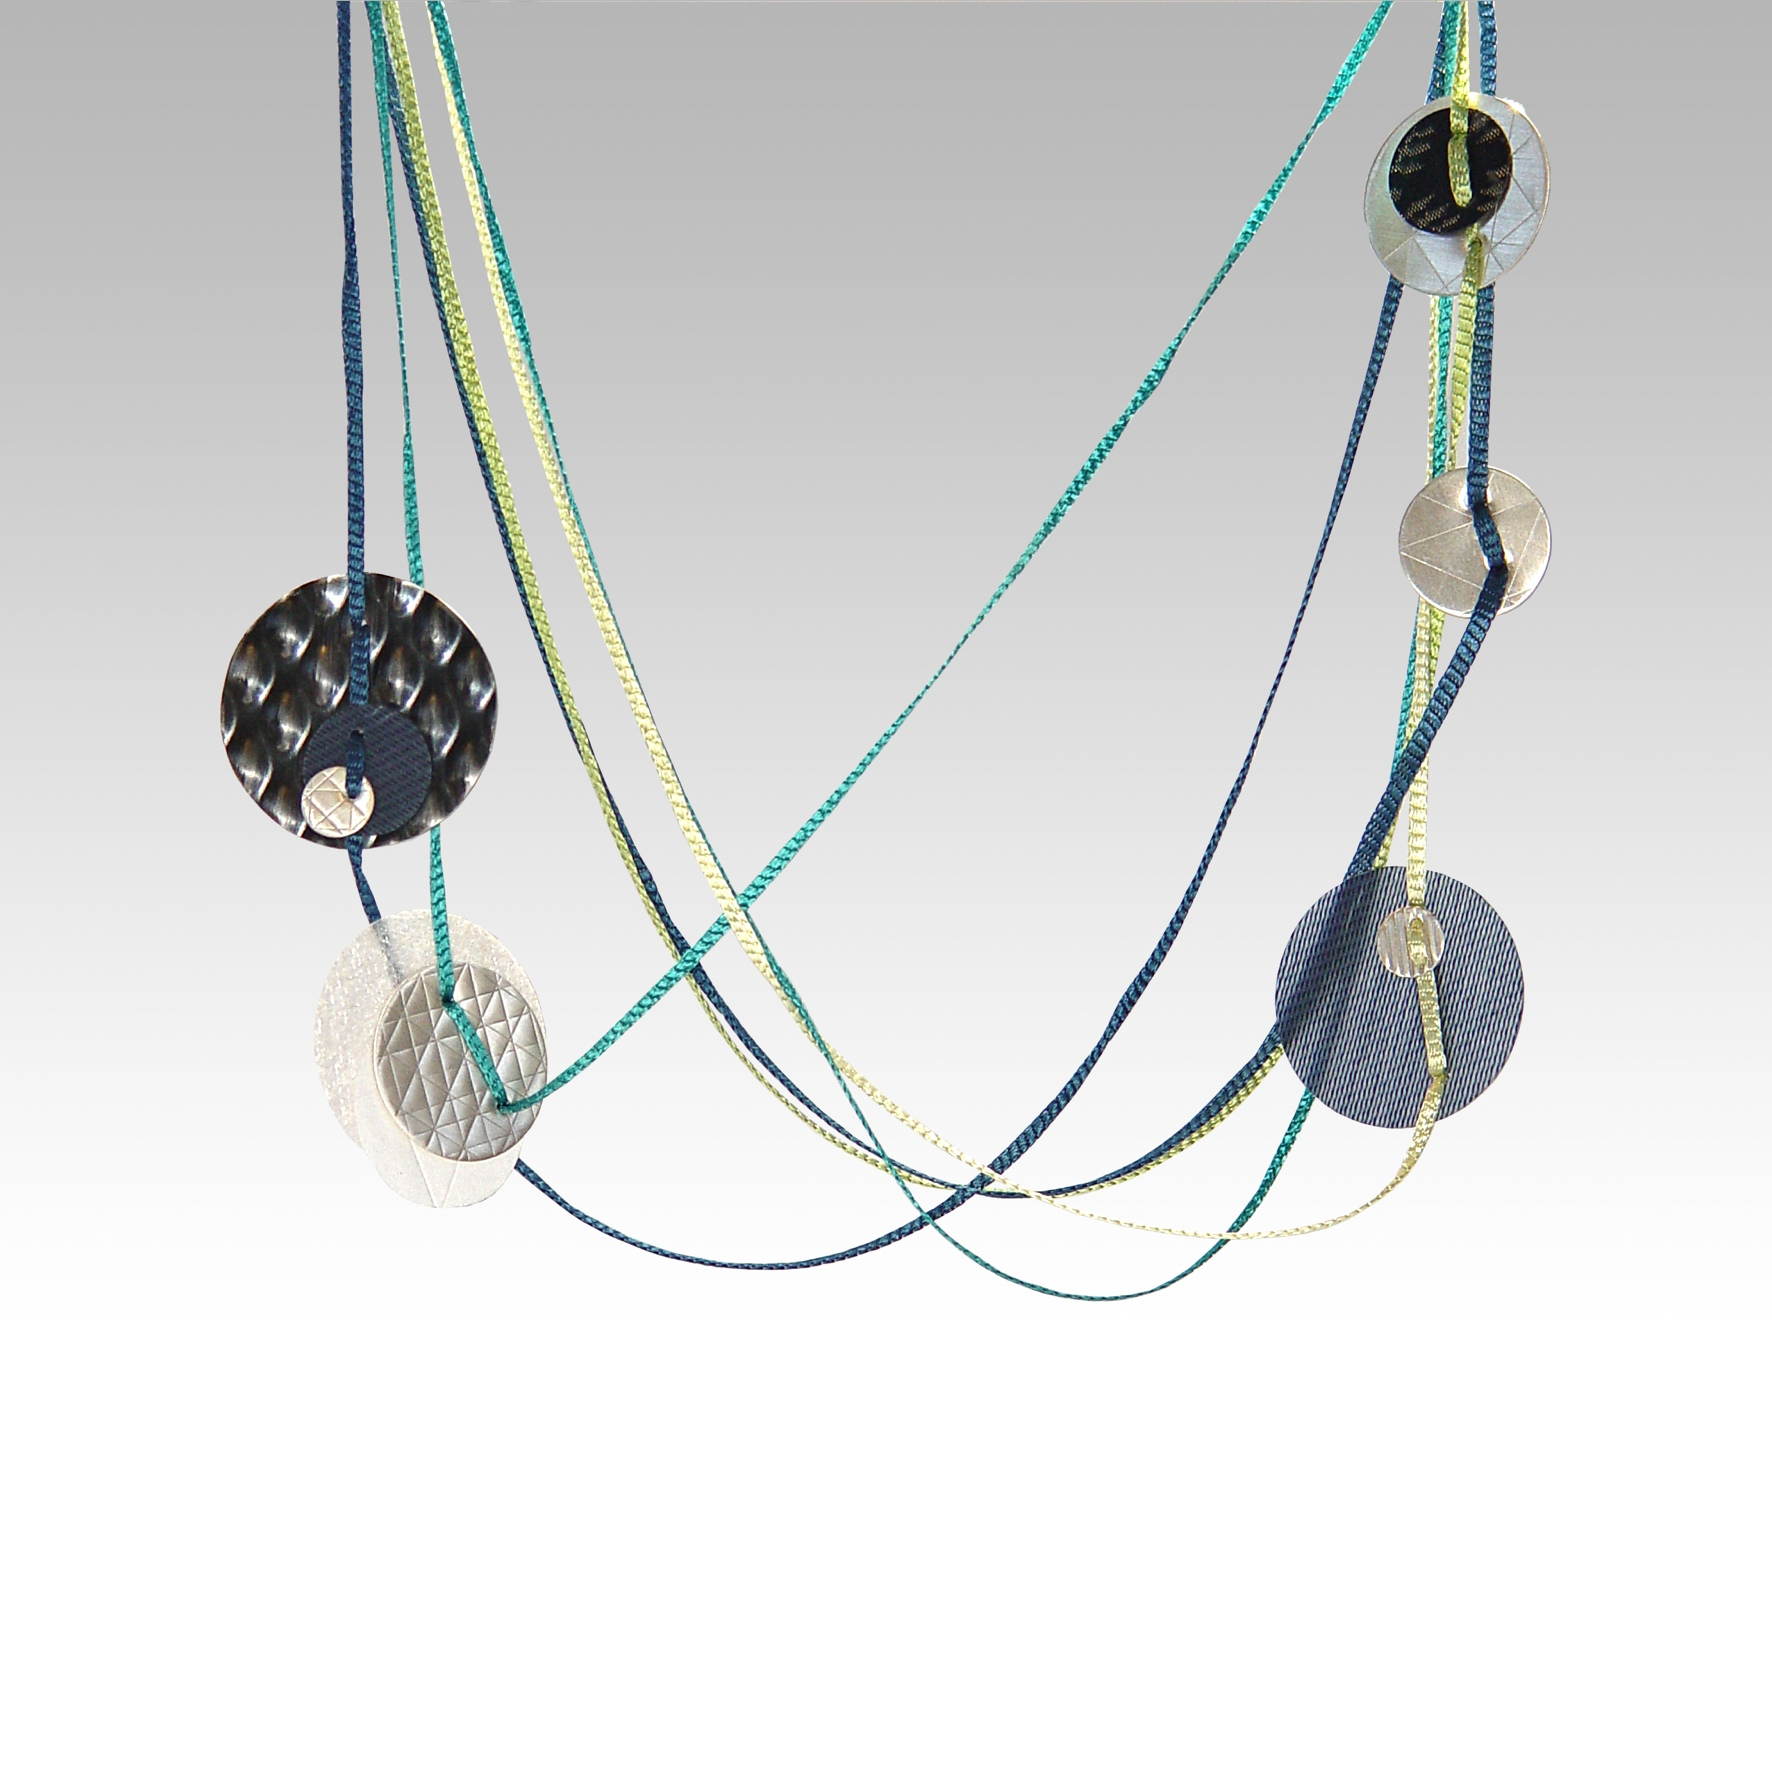 Jazz necklace with metallic and textural discs